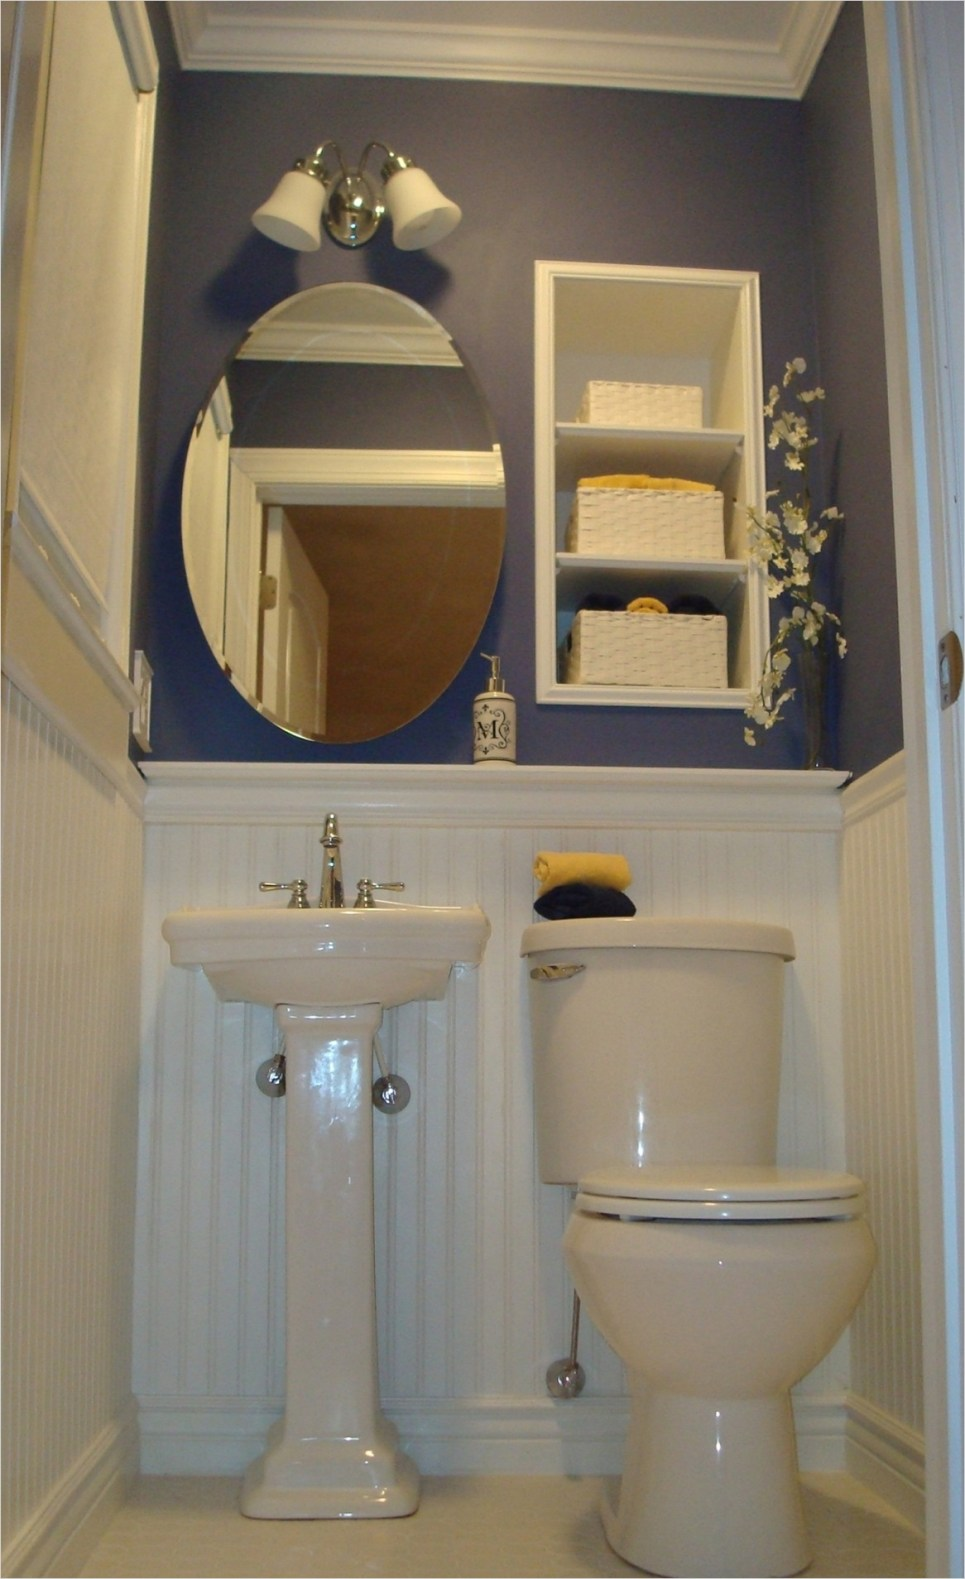 Bathroom Shelves Decorating Ideas 93 Bathroom Shelving Ideas for Optimizing Space 2